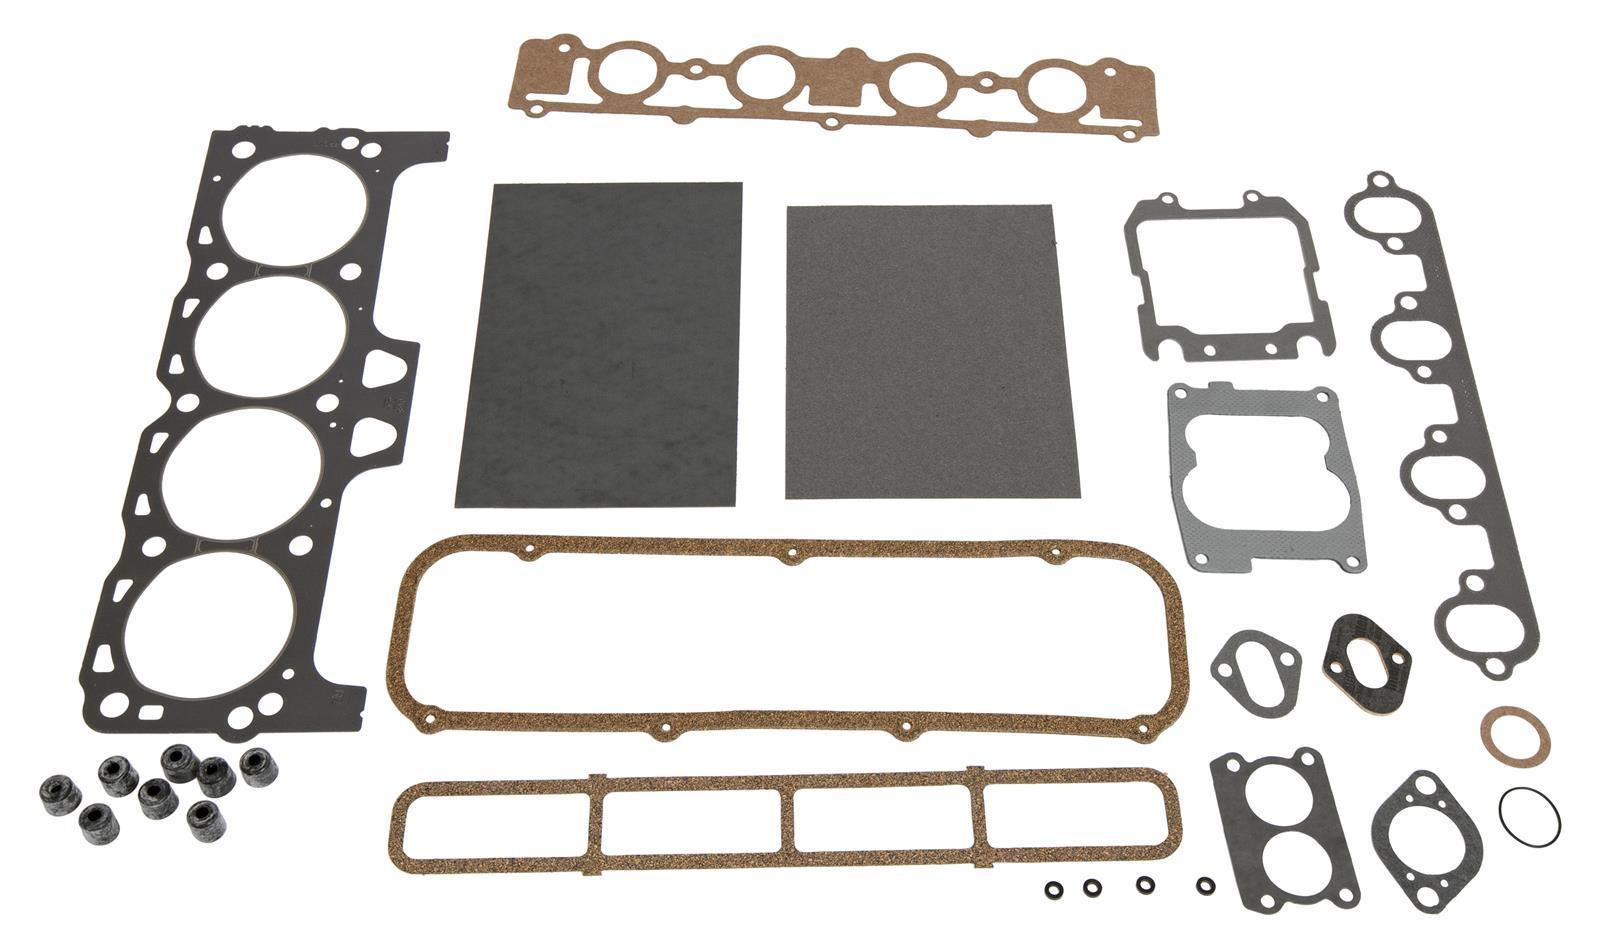 Mercruiser 3.7L Head Gasket Set 4 Cylinder Marine Engine 470 470R 488R 3.7LX